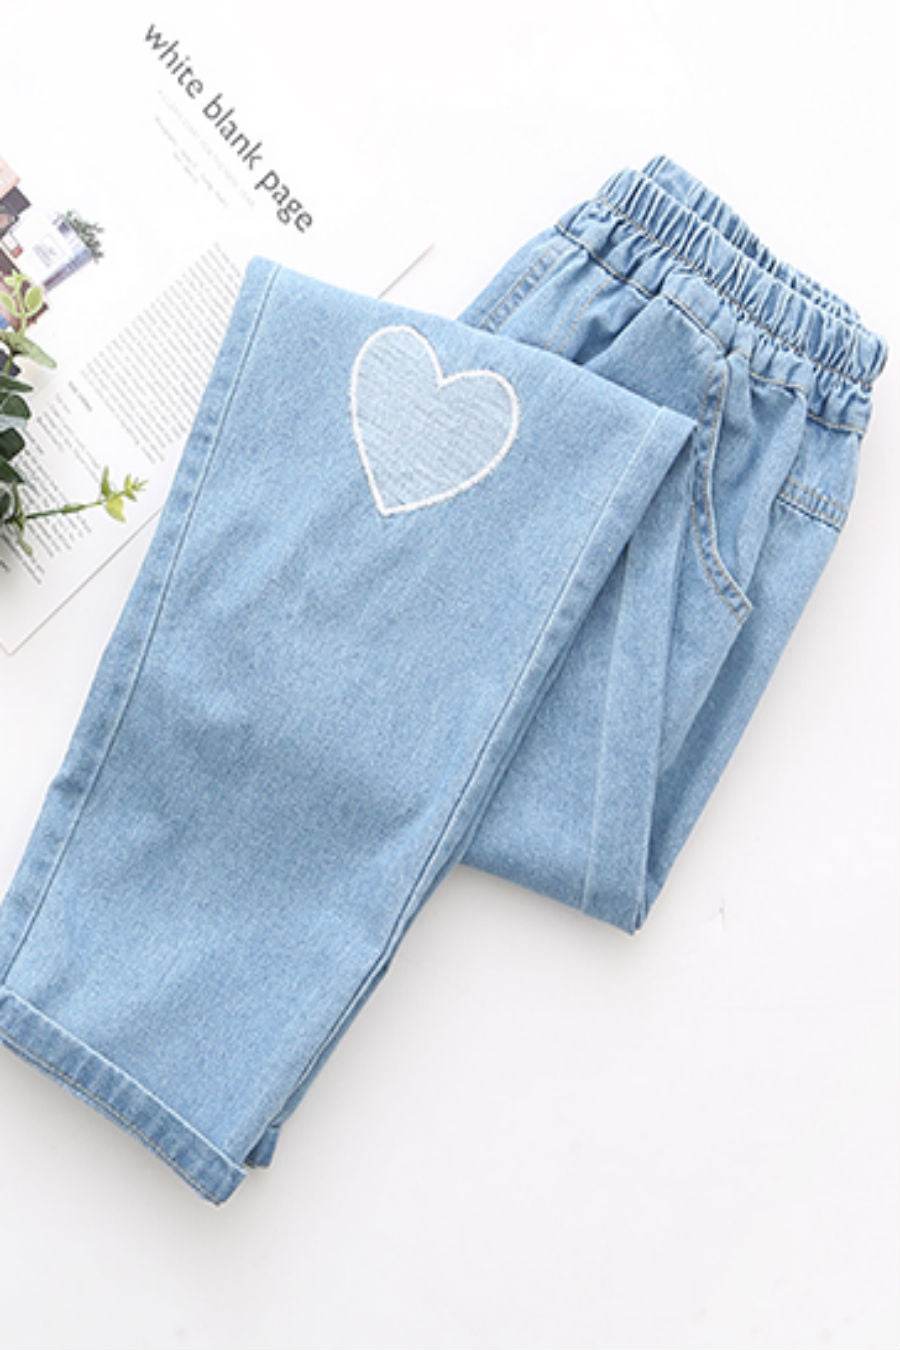 Heart Embroidery Jeans